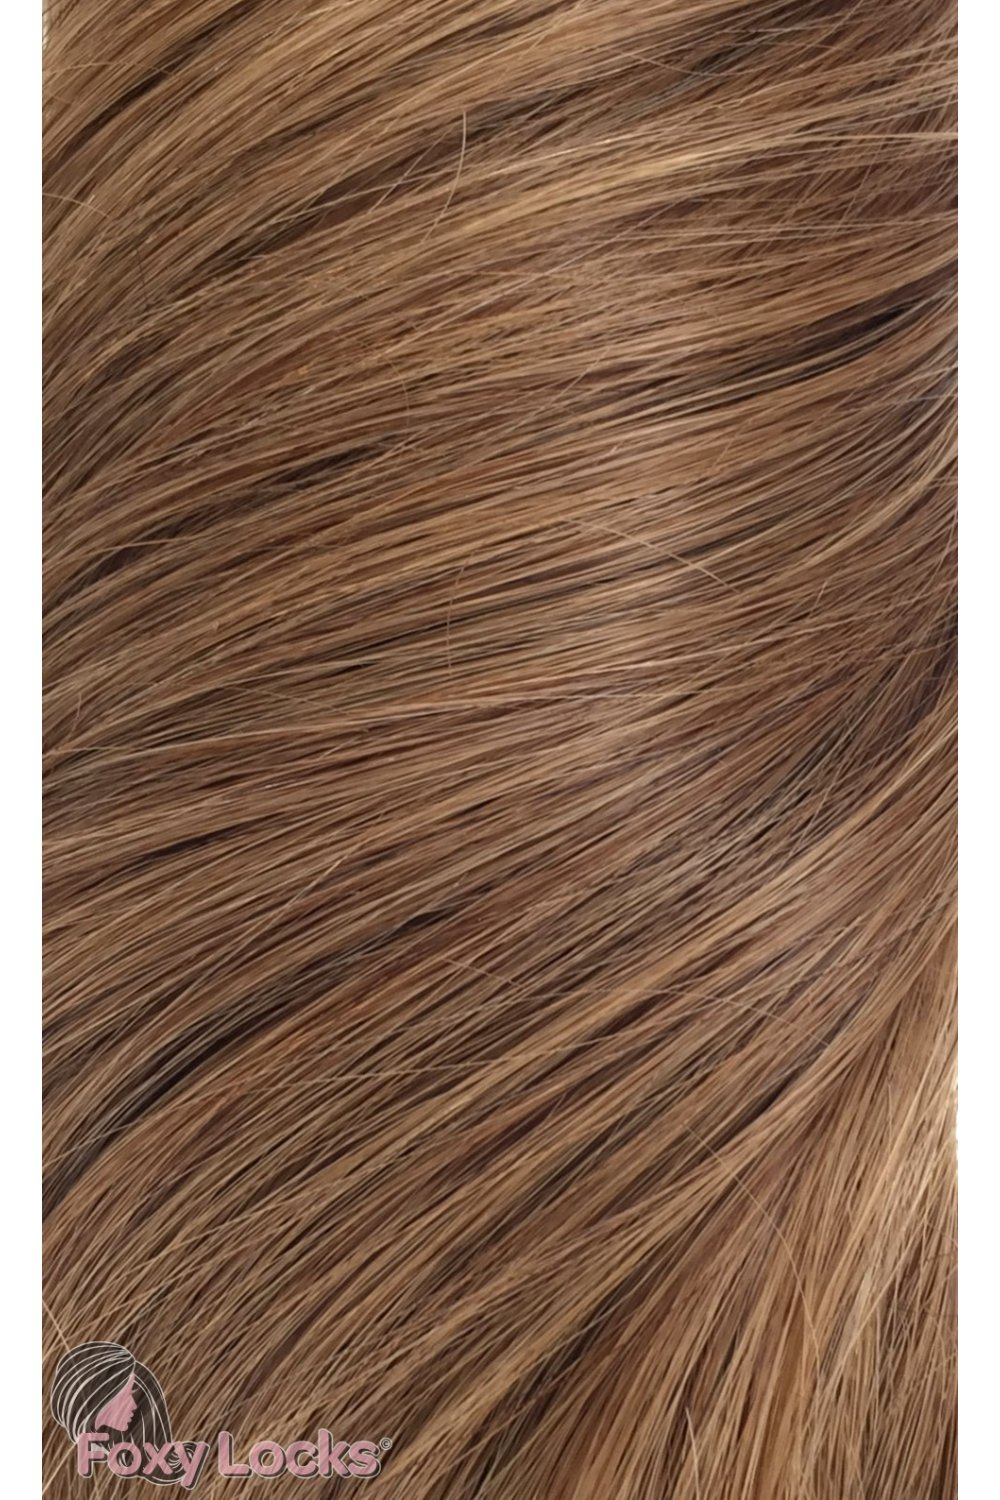 Sunkissed Brown 8 Luxurious 24 Clip In Human Hair Extensions 280g